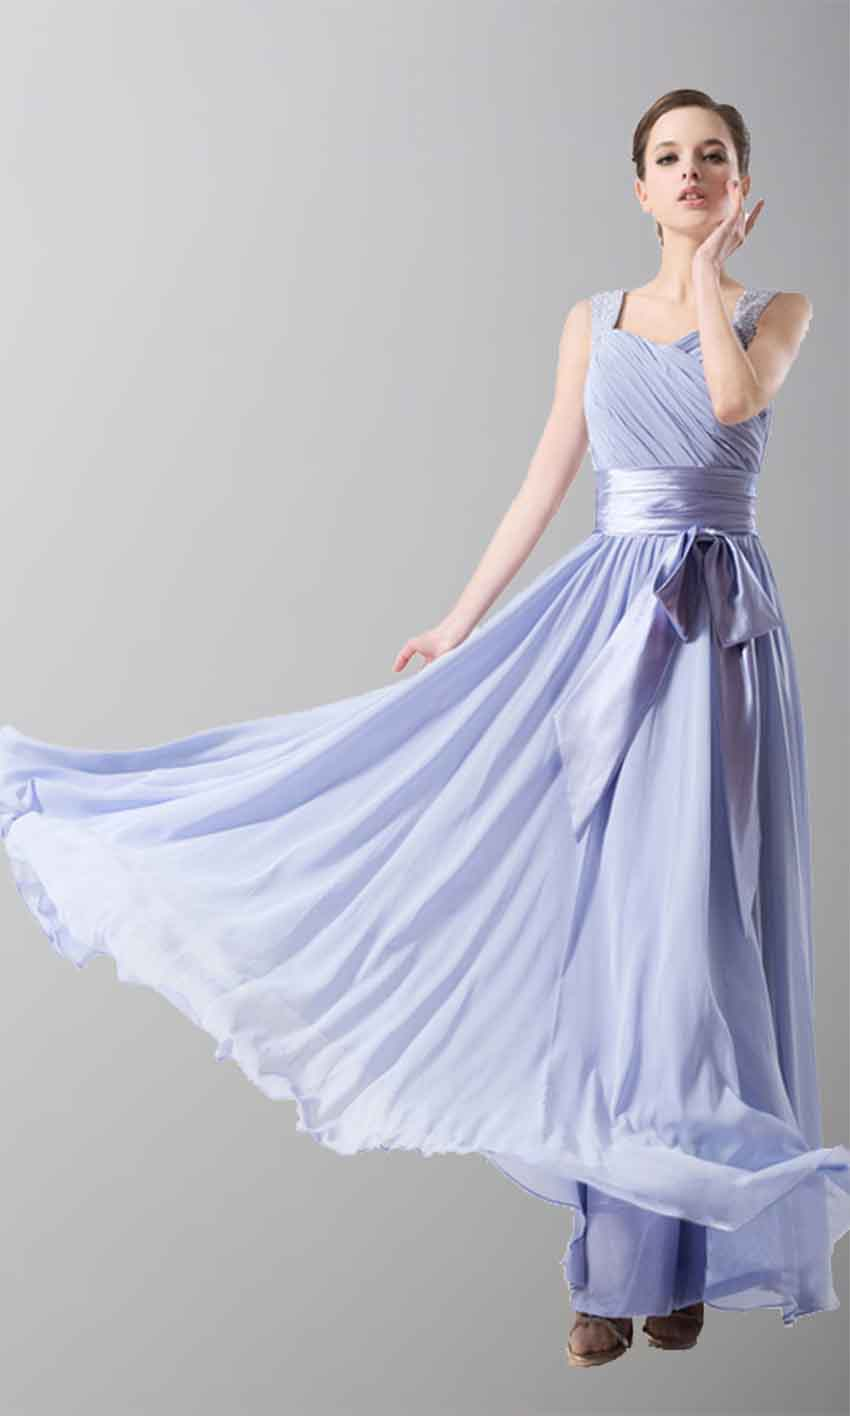 Shoulder Belt Blue Long Chiffon Bridesmaid Dress KSP144 [KSP144] - £93.00 : Cheap Prom Dresses Uk, Bridesmaid Dresses, 2014 Prom & Evening Dresses, Look for cheap elegant prom dresses 2014, cocktail gowns, or dresses for special occasions? kissprom.co.uk offers various bridesmaid dresses, evening dress, free shipping to UK etc.